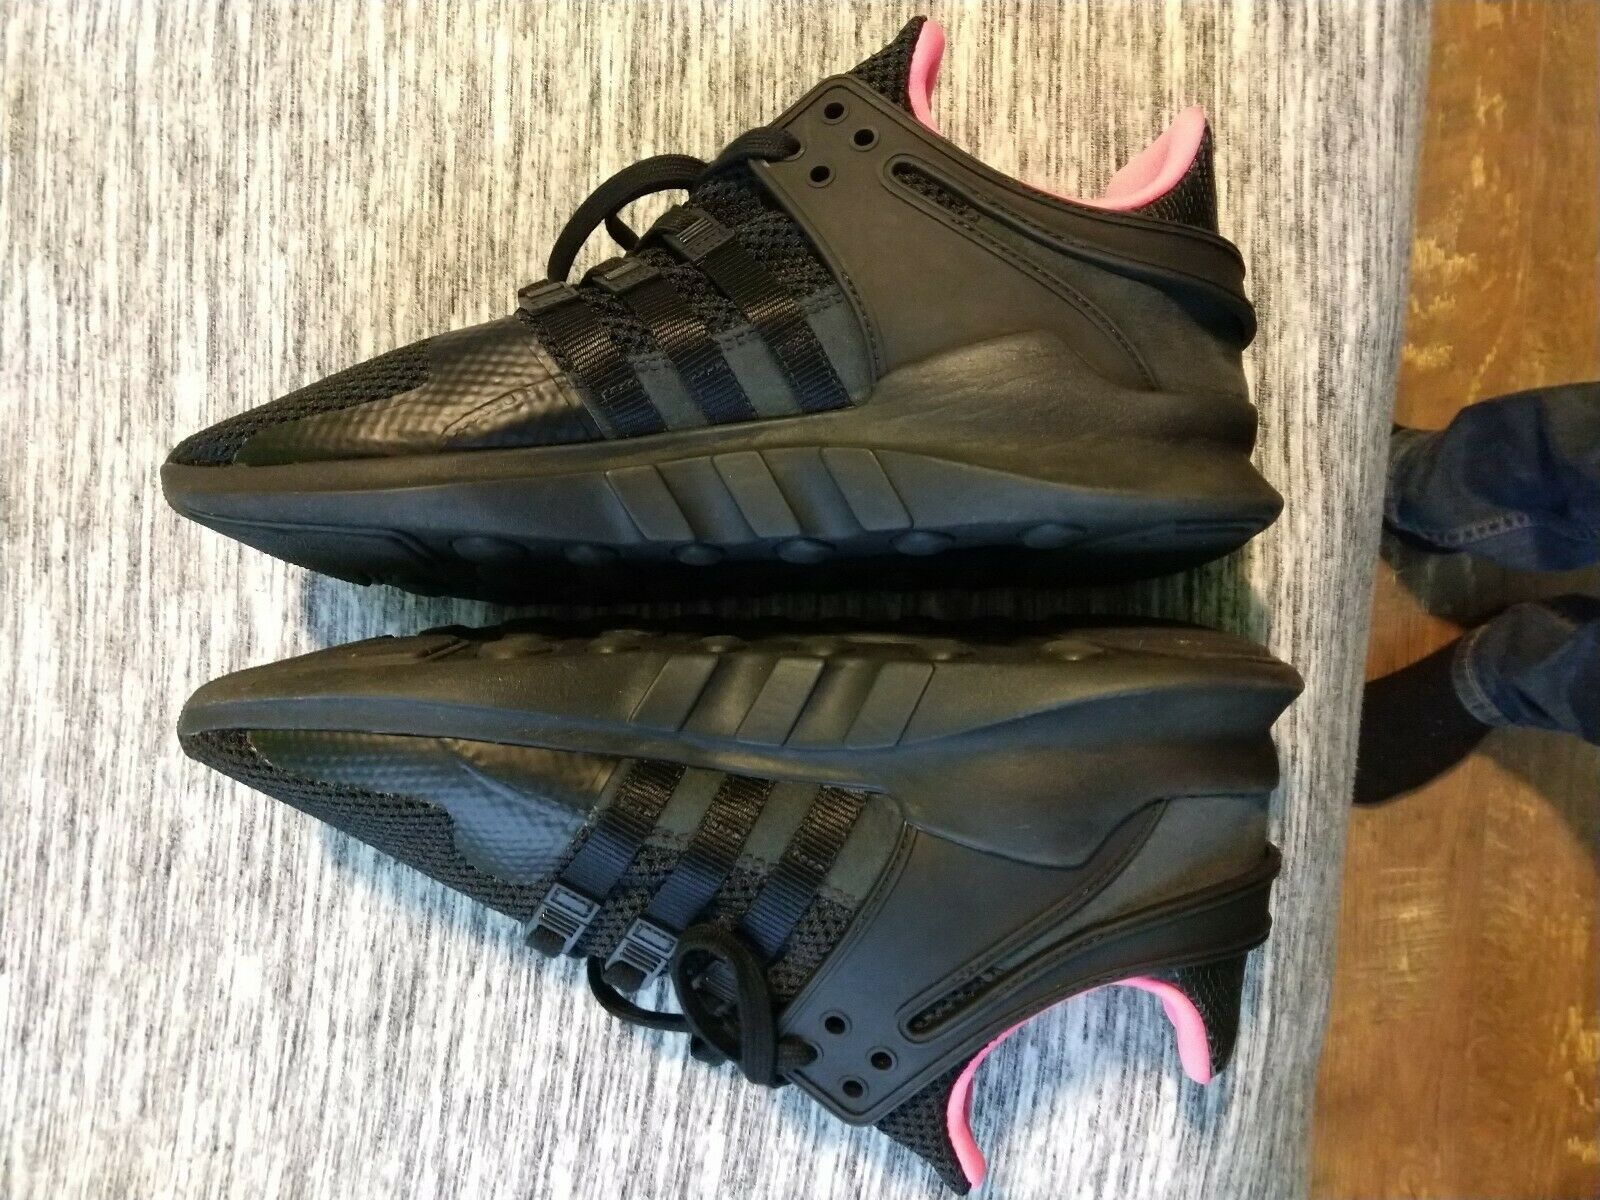 Adidas EQT Support ADV Running shoes Men's Size 10 Black Pink bb1300